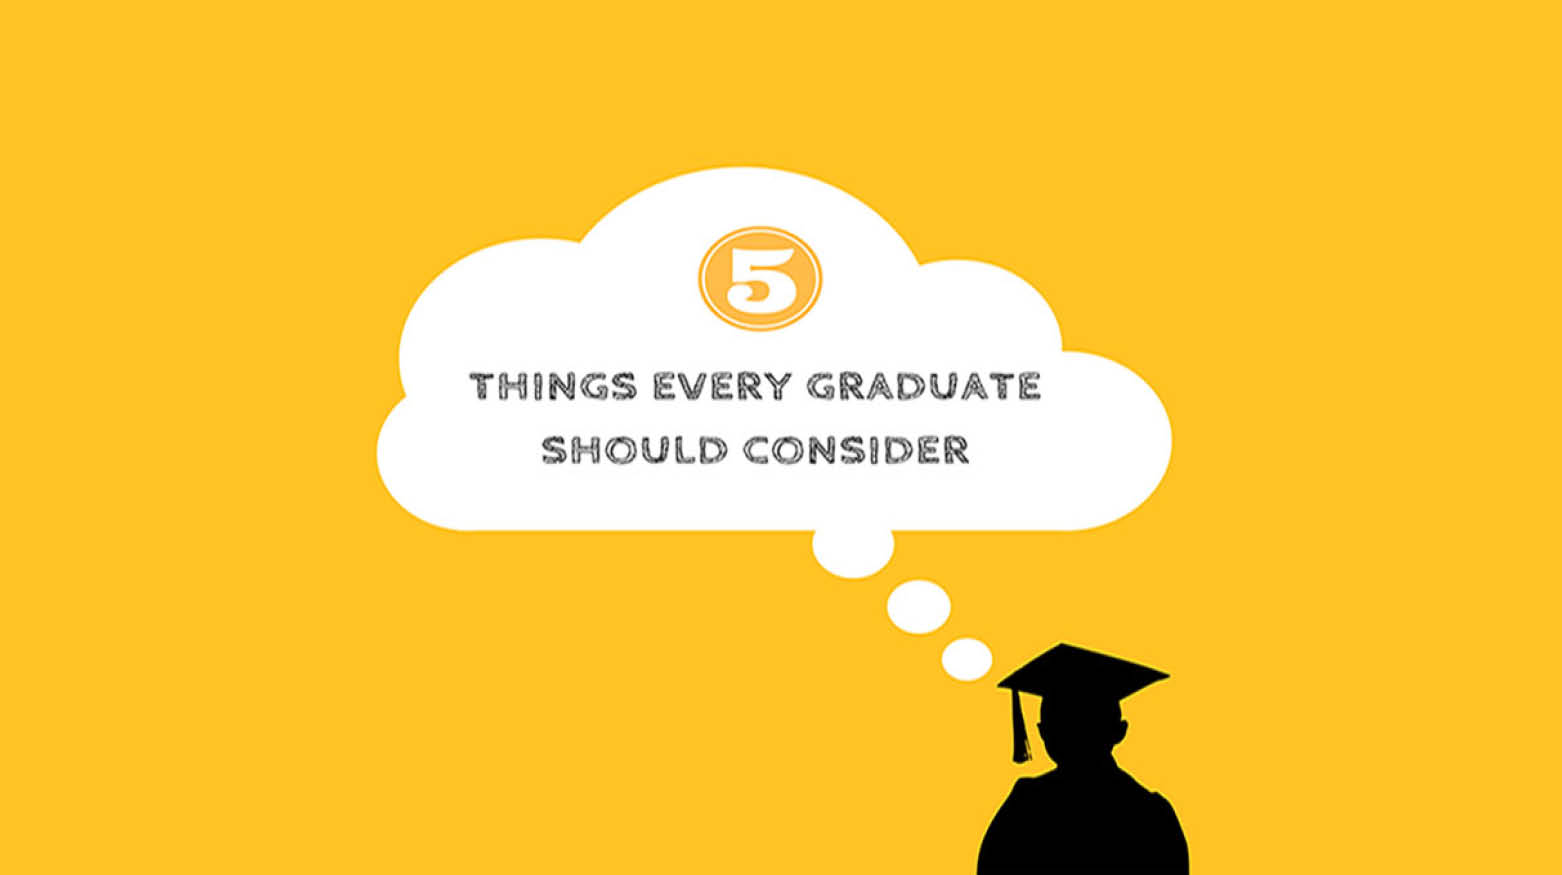 5 things every graduate should consider